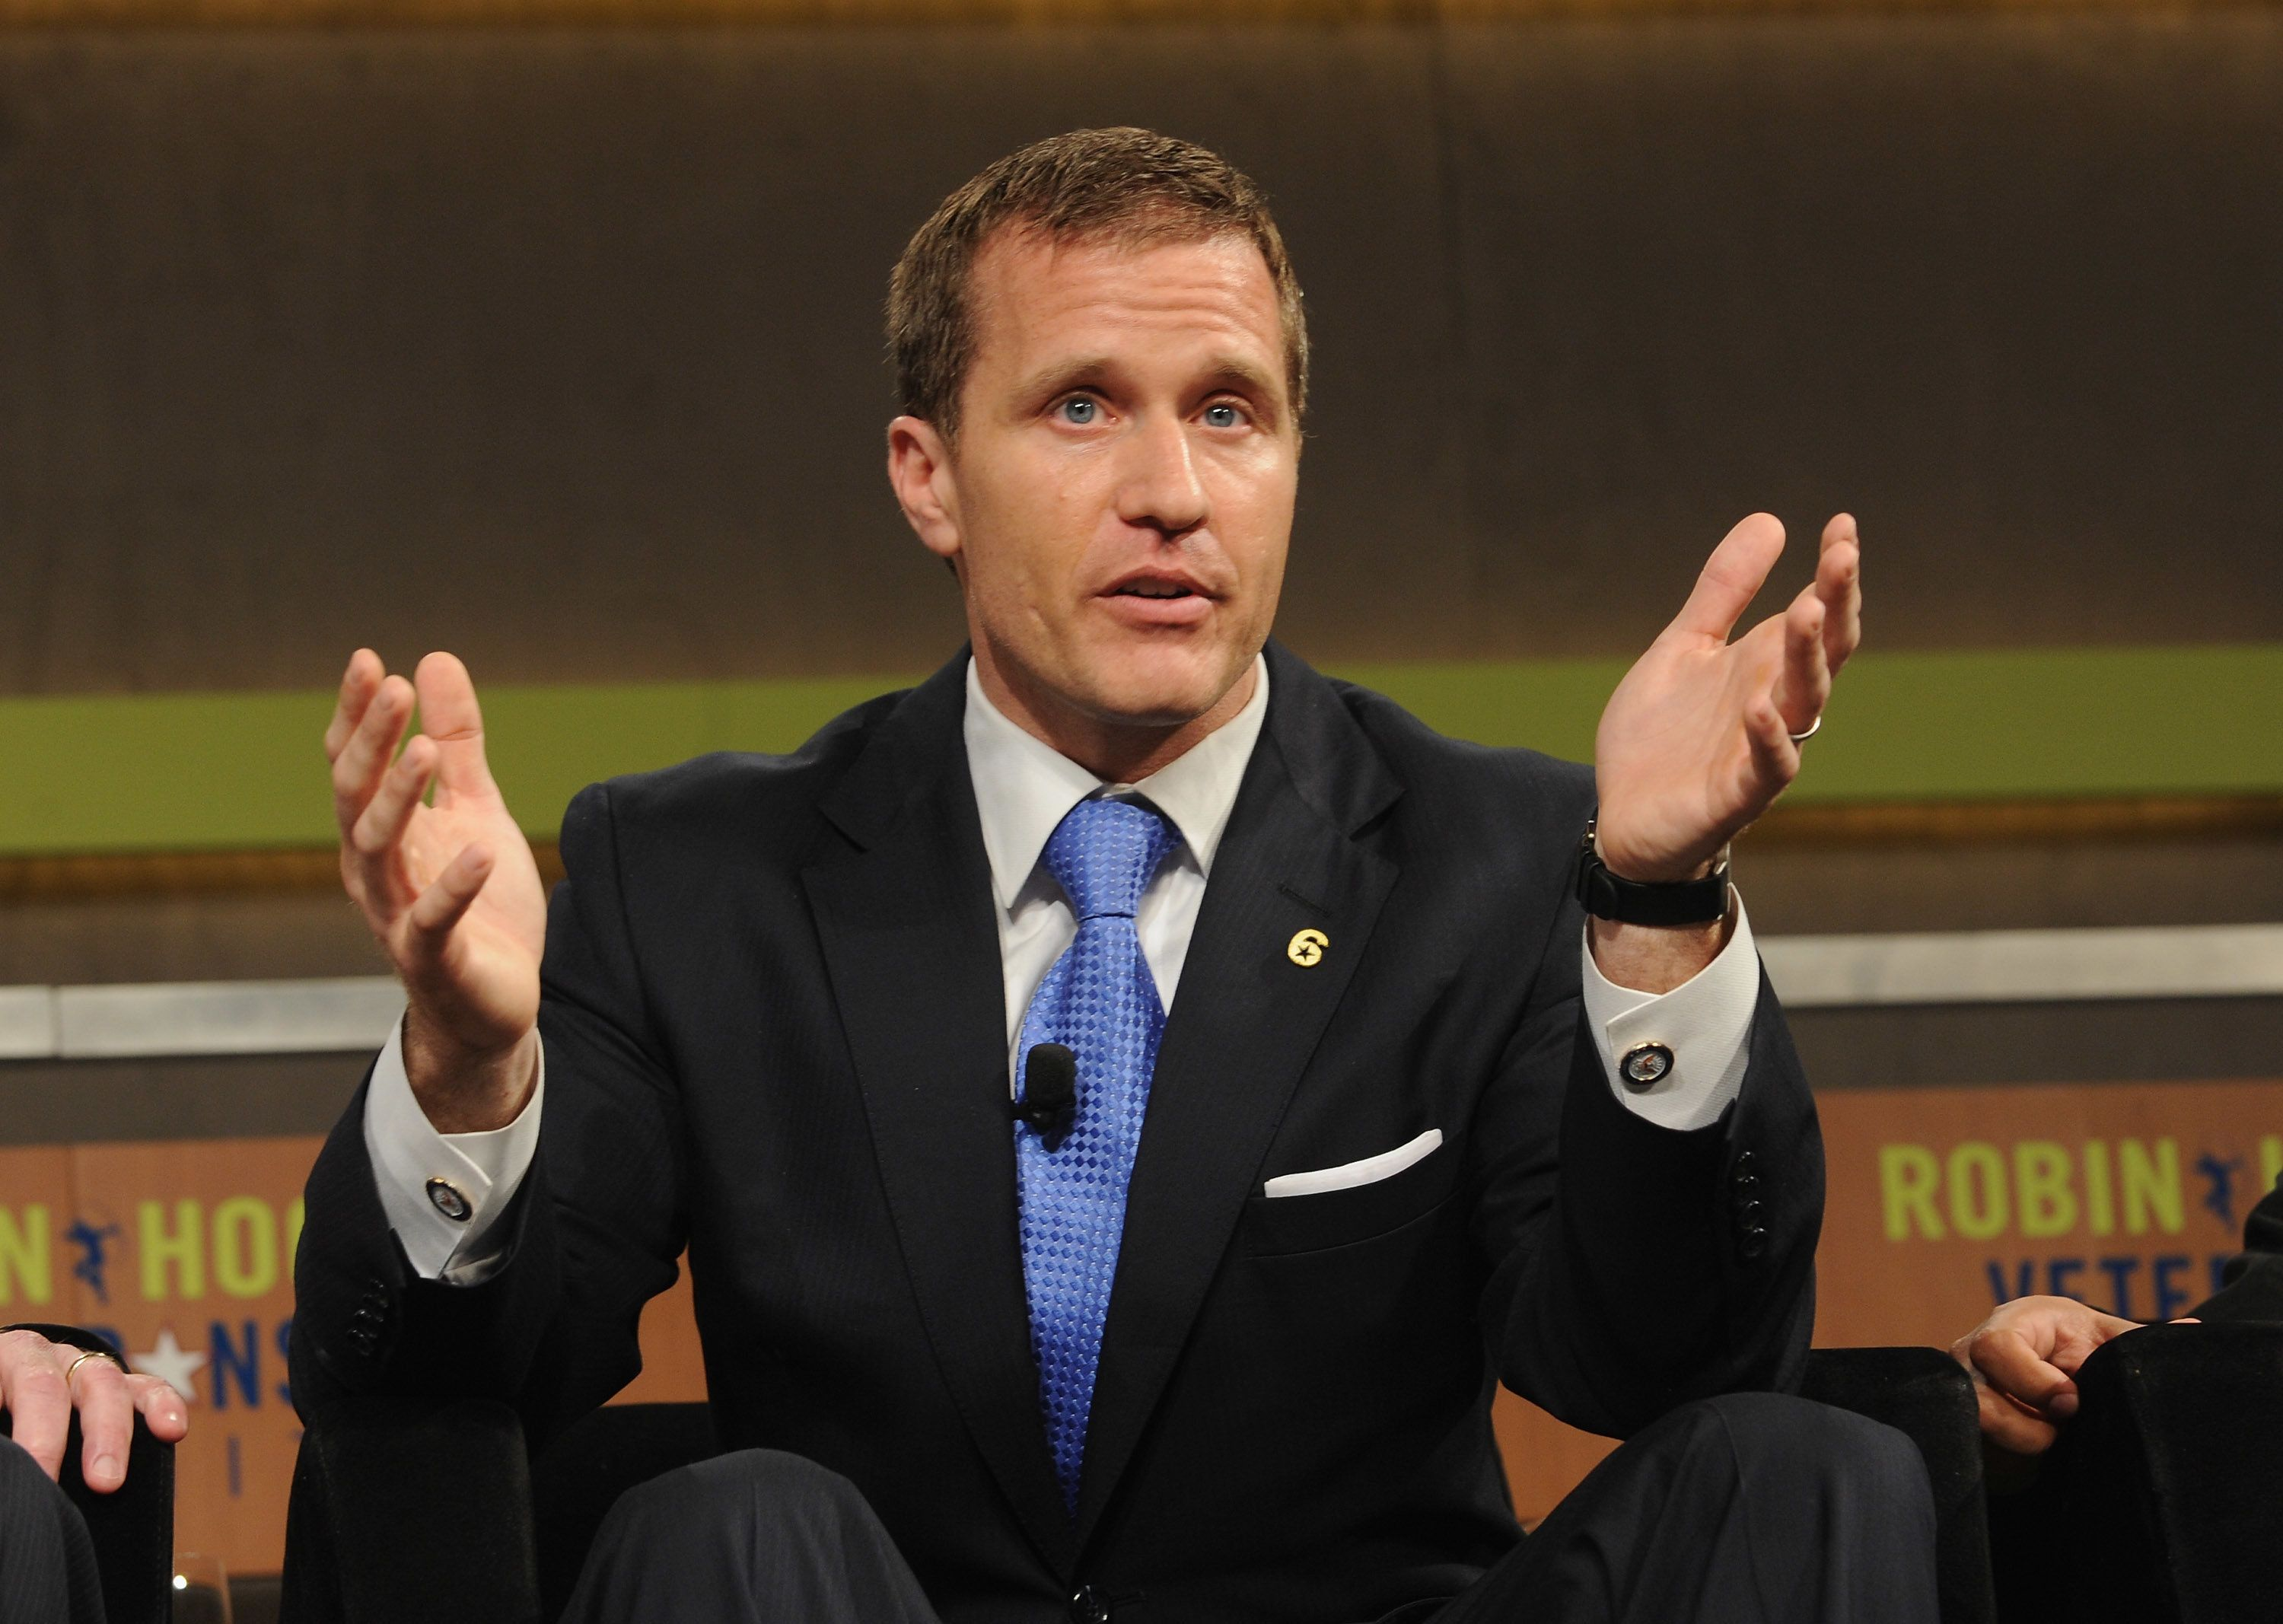 NEW YORK, NY - MAY 07: Eric Greitens Founder and CEO, The Mission Continues speaks at the Robin Hood Veterans Summit at Intrepid Sea-Air-Space Museum on May 7, 2012 in New York City.  (Photo by Craig Barritt/Getty Images for The Robin Hood Foundation)